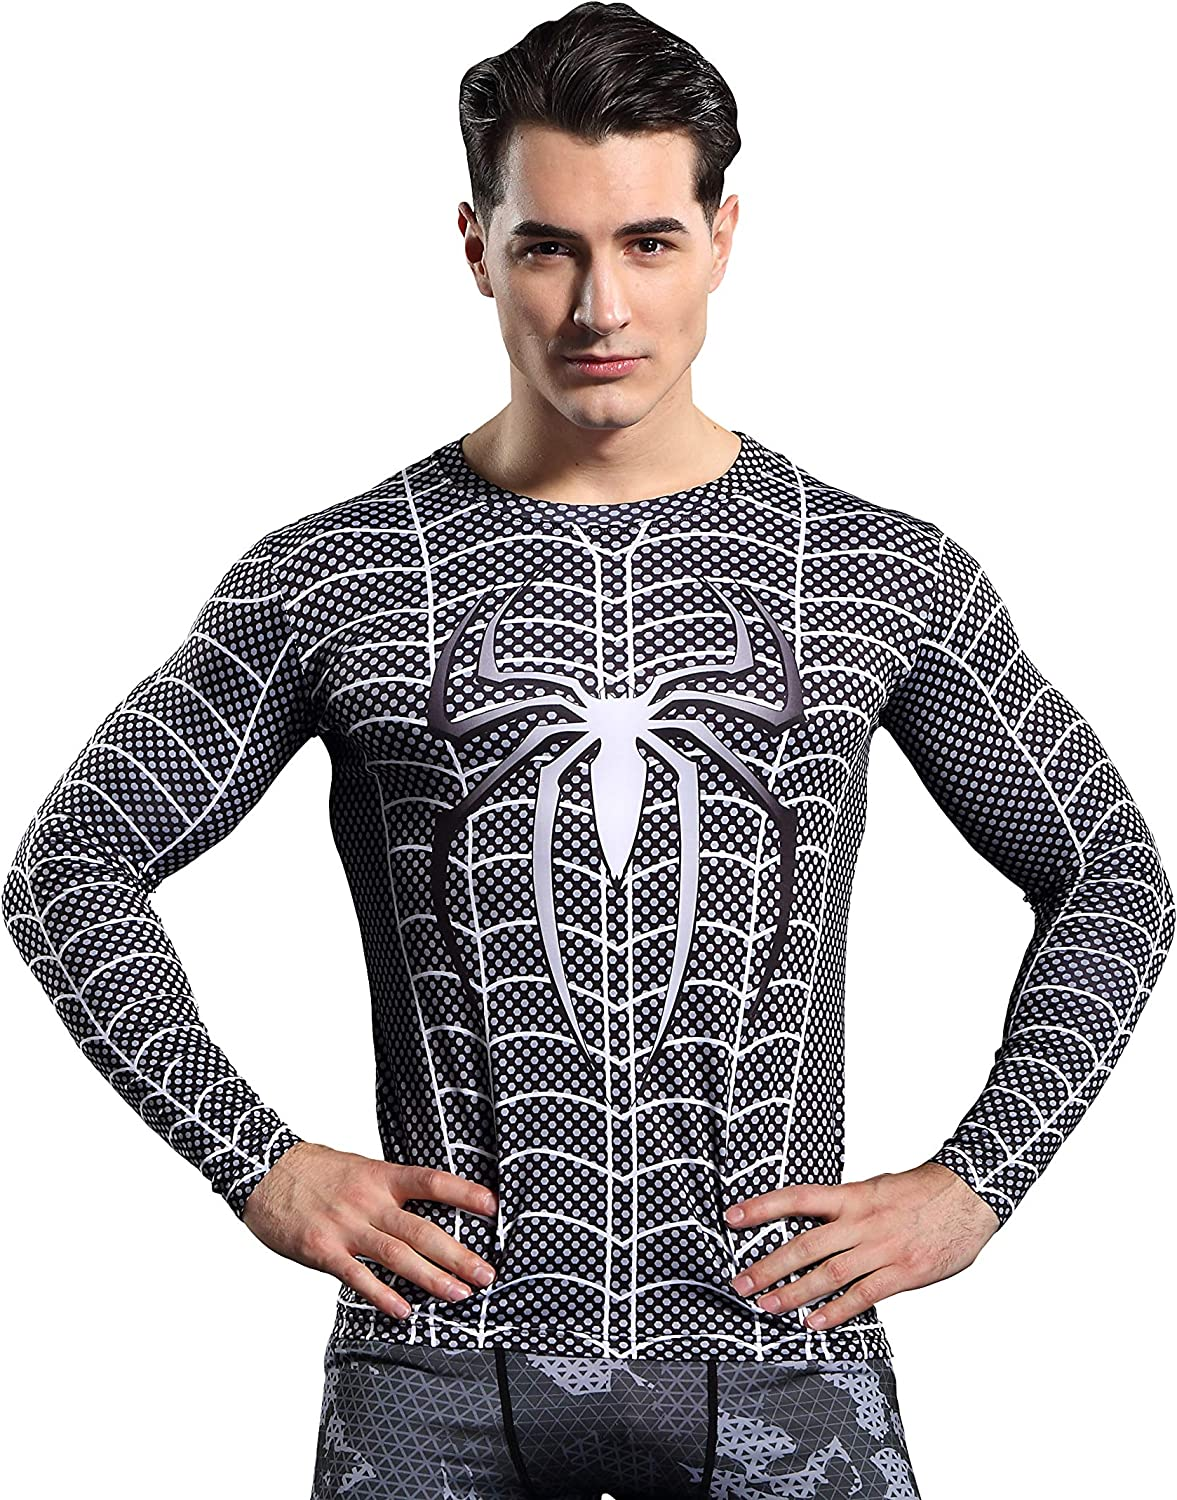 GYM GALA Spiderman Men's Compression Shirt 3D Print T-Shirt